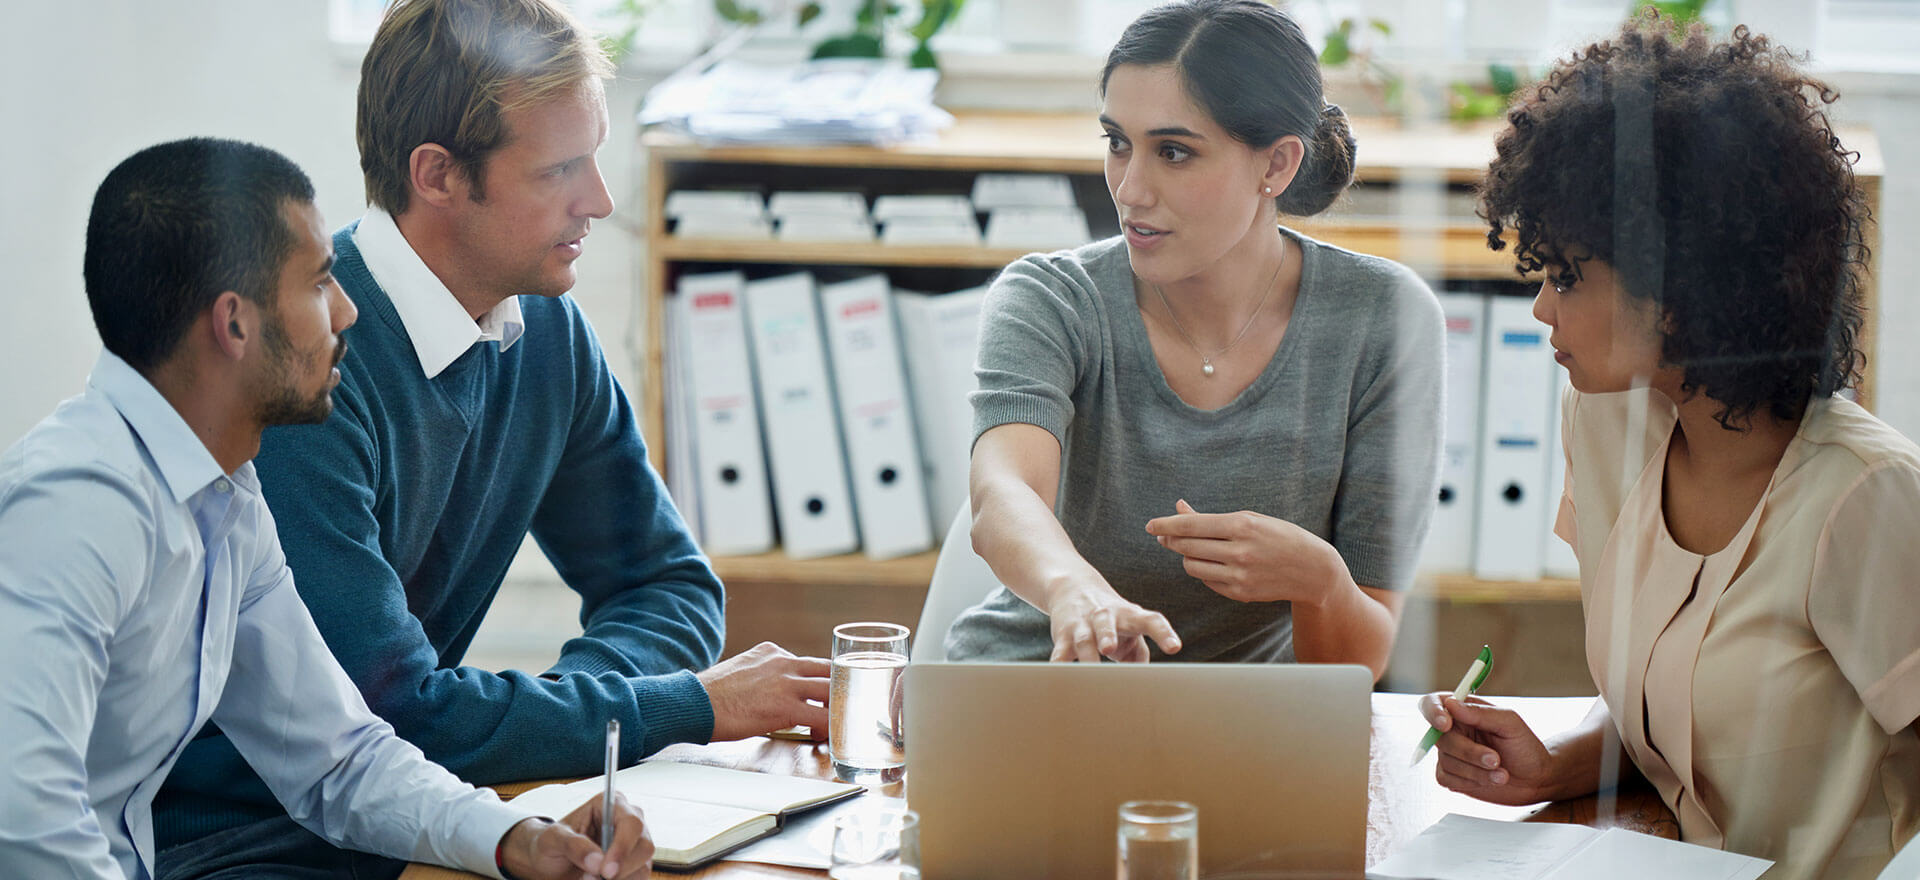 small business leaderships skills in action during a meeting